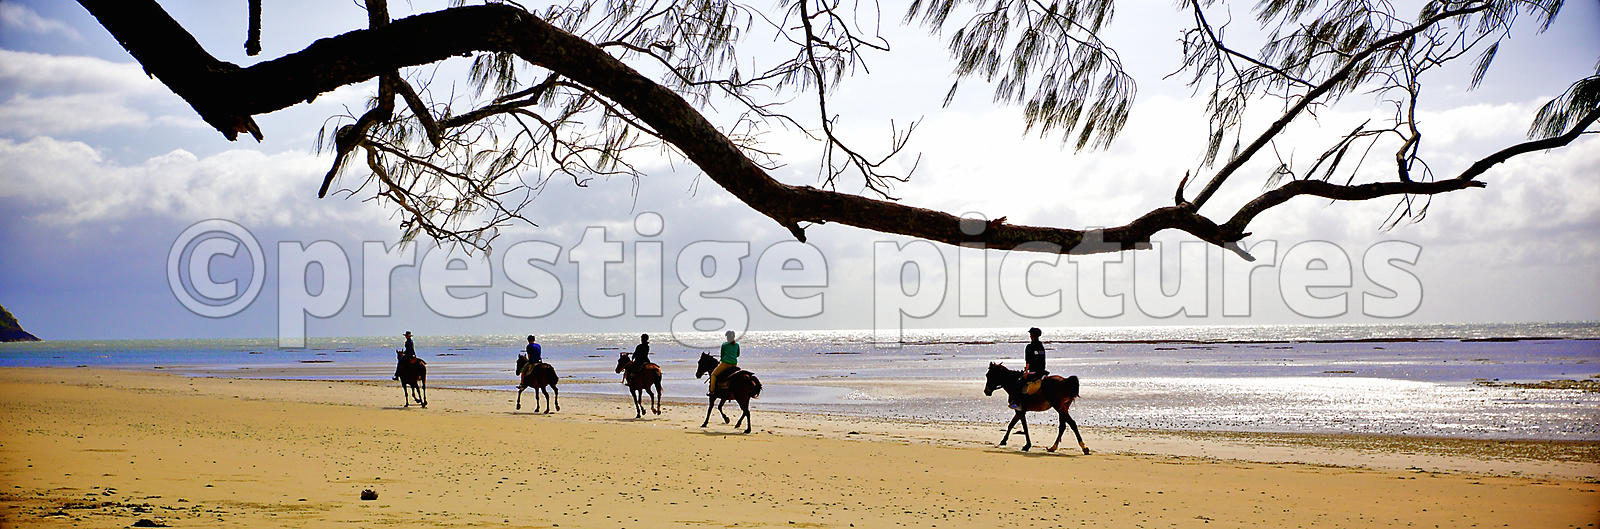 Horse Riders in Silhouette against a Silvery Sea on Myall Beach, Queensland